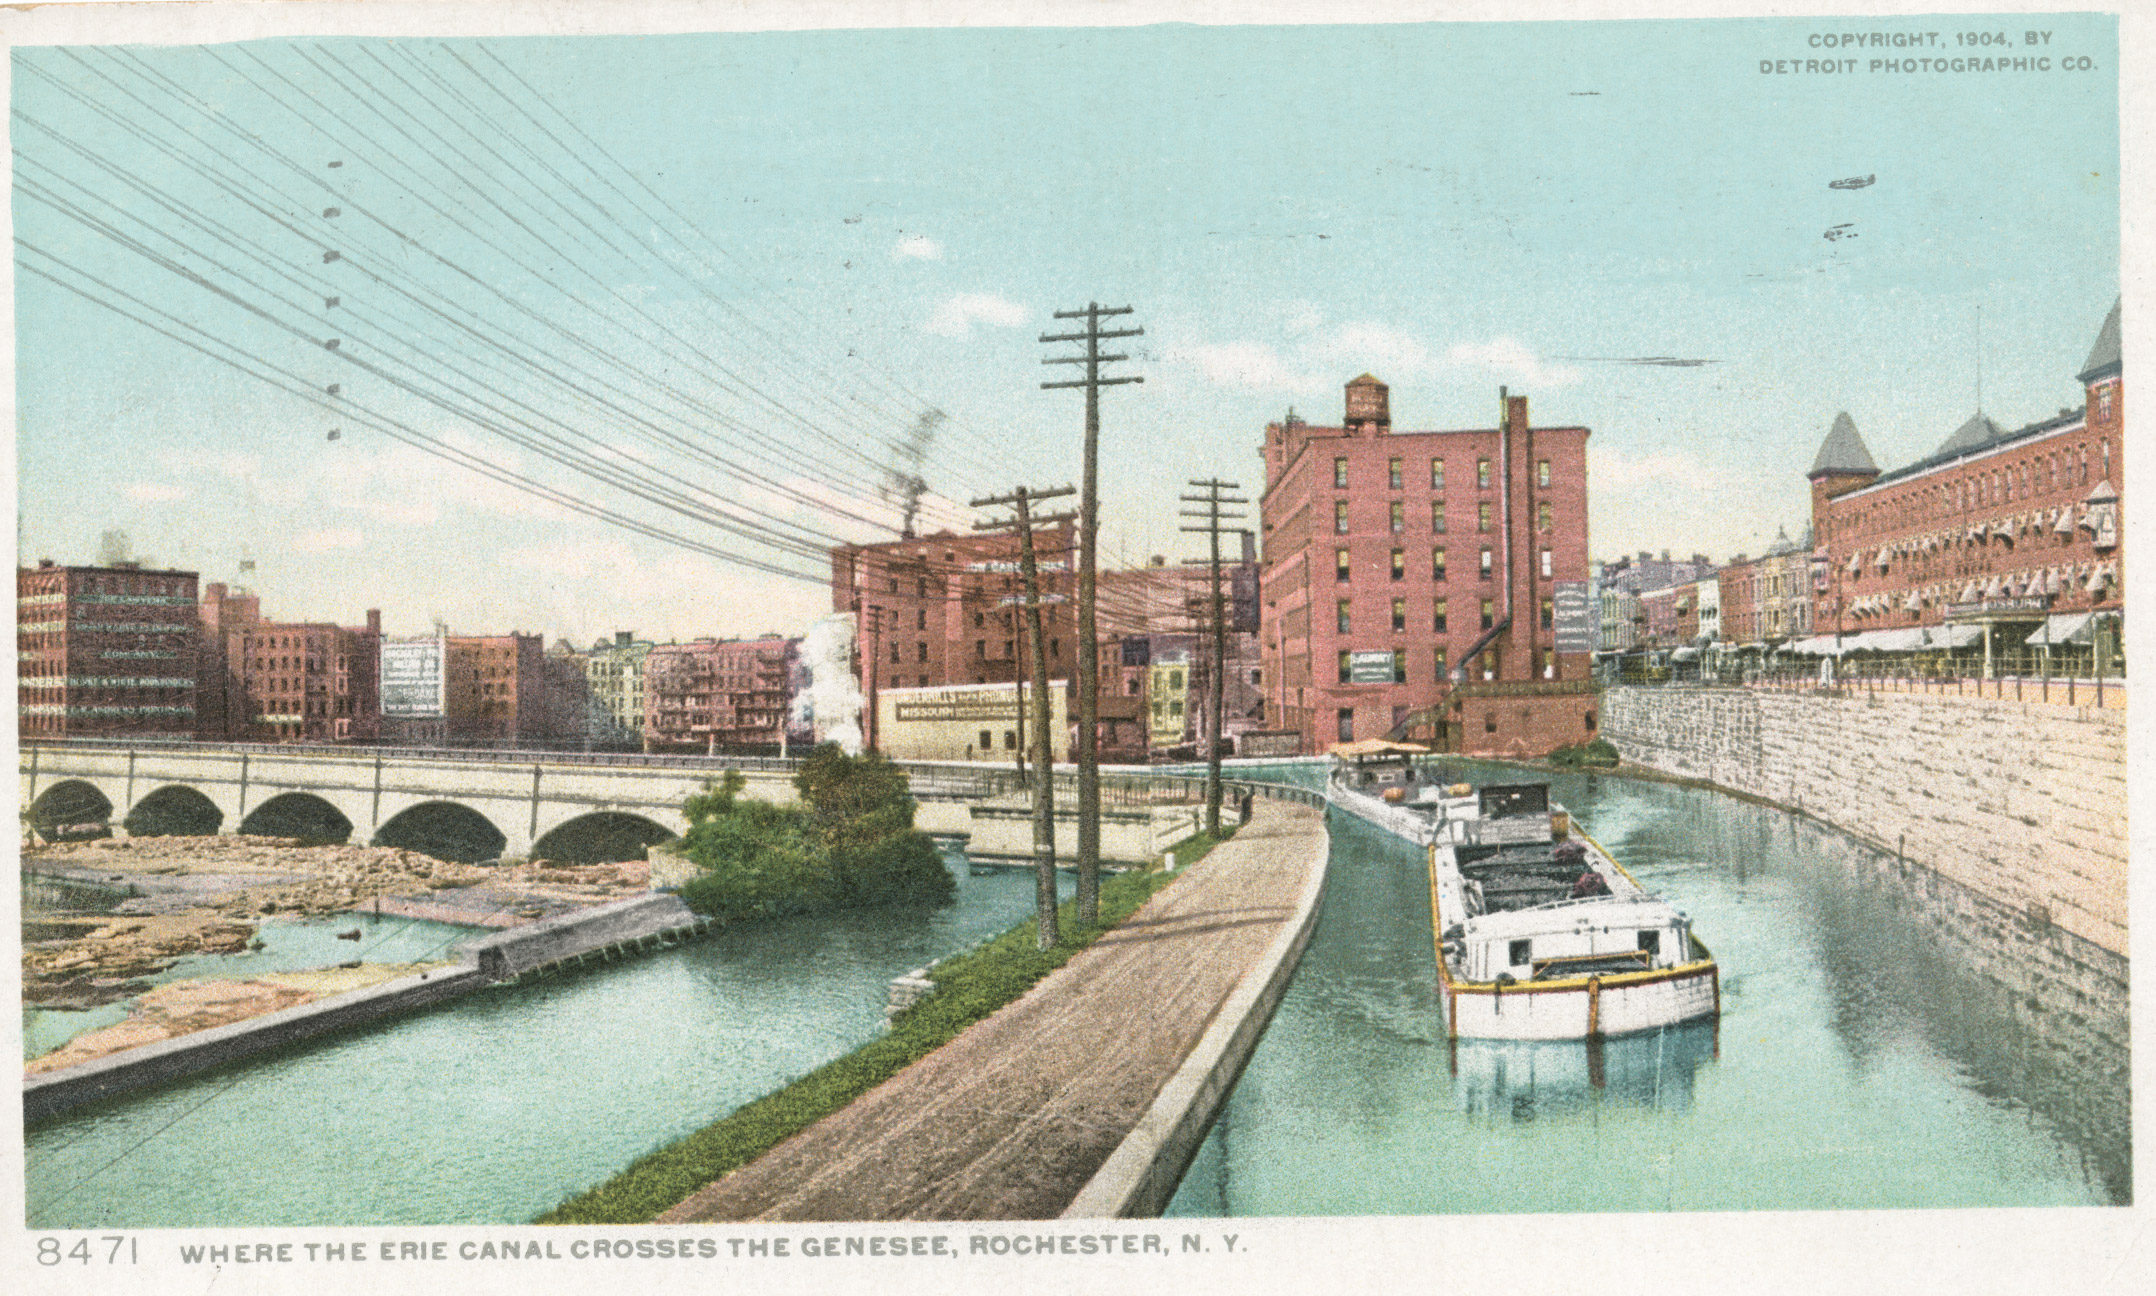 Where the Erie Canal crosses the Genesee, Rochester, NY.